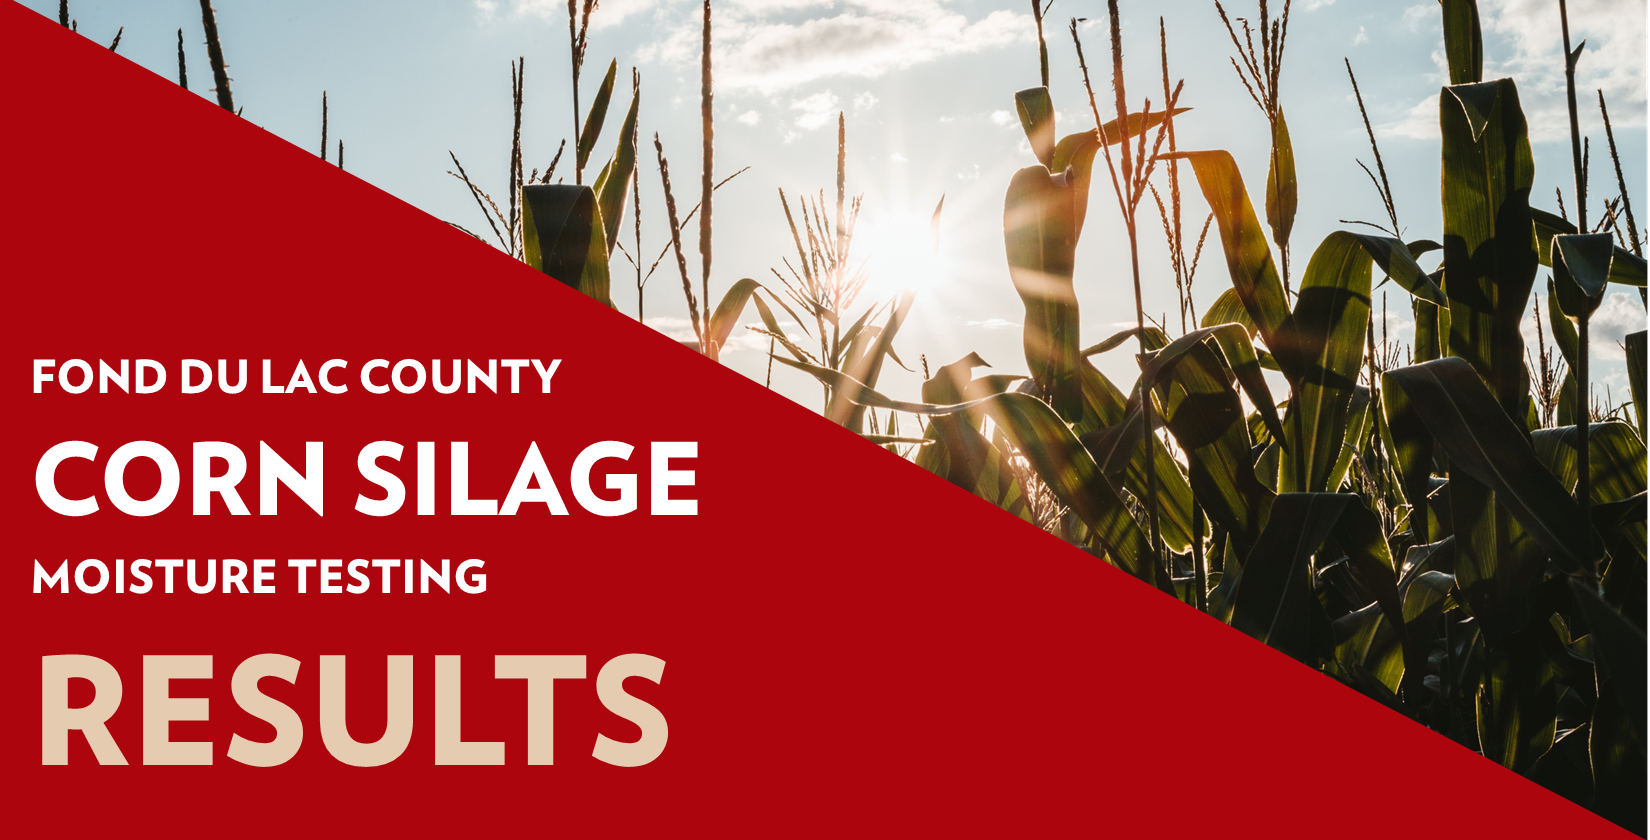 Fond du Lac County Corn Silage Moisture Testing Results